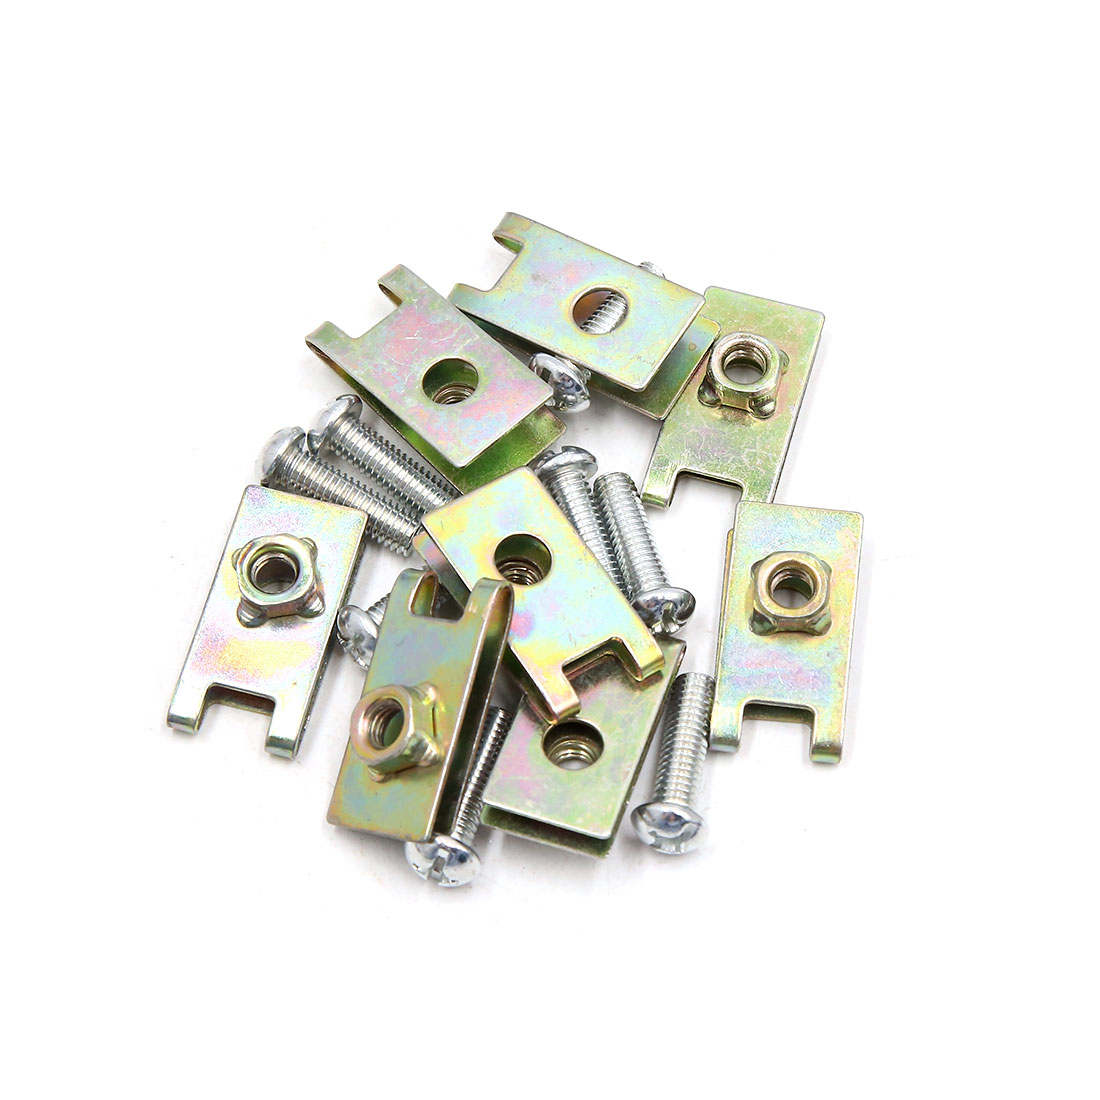 8Pcs 6mm Thread Dia Universal Car License Plate Fastener Clips Kit w Screw